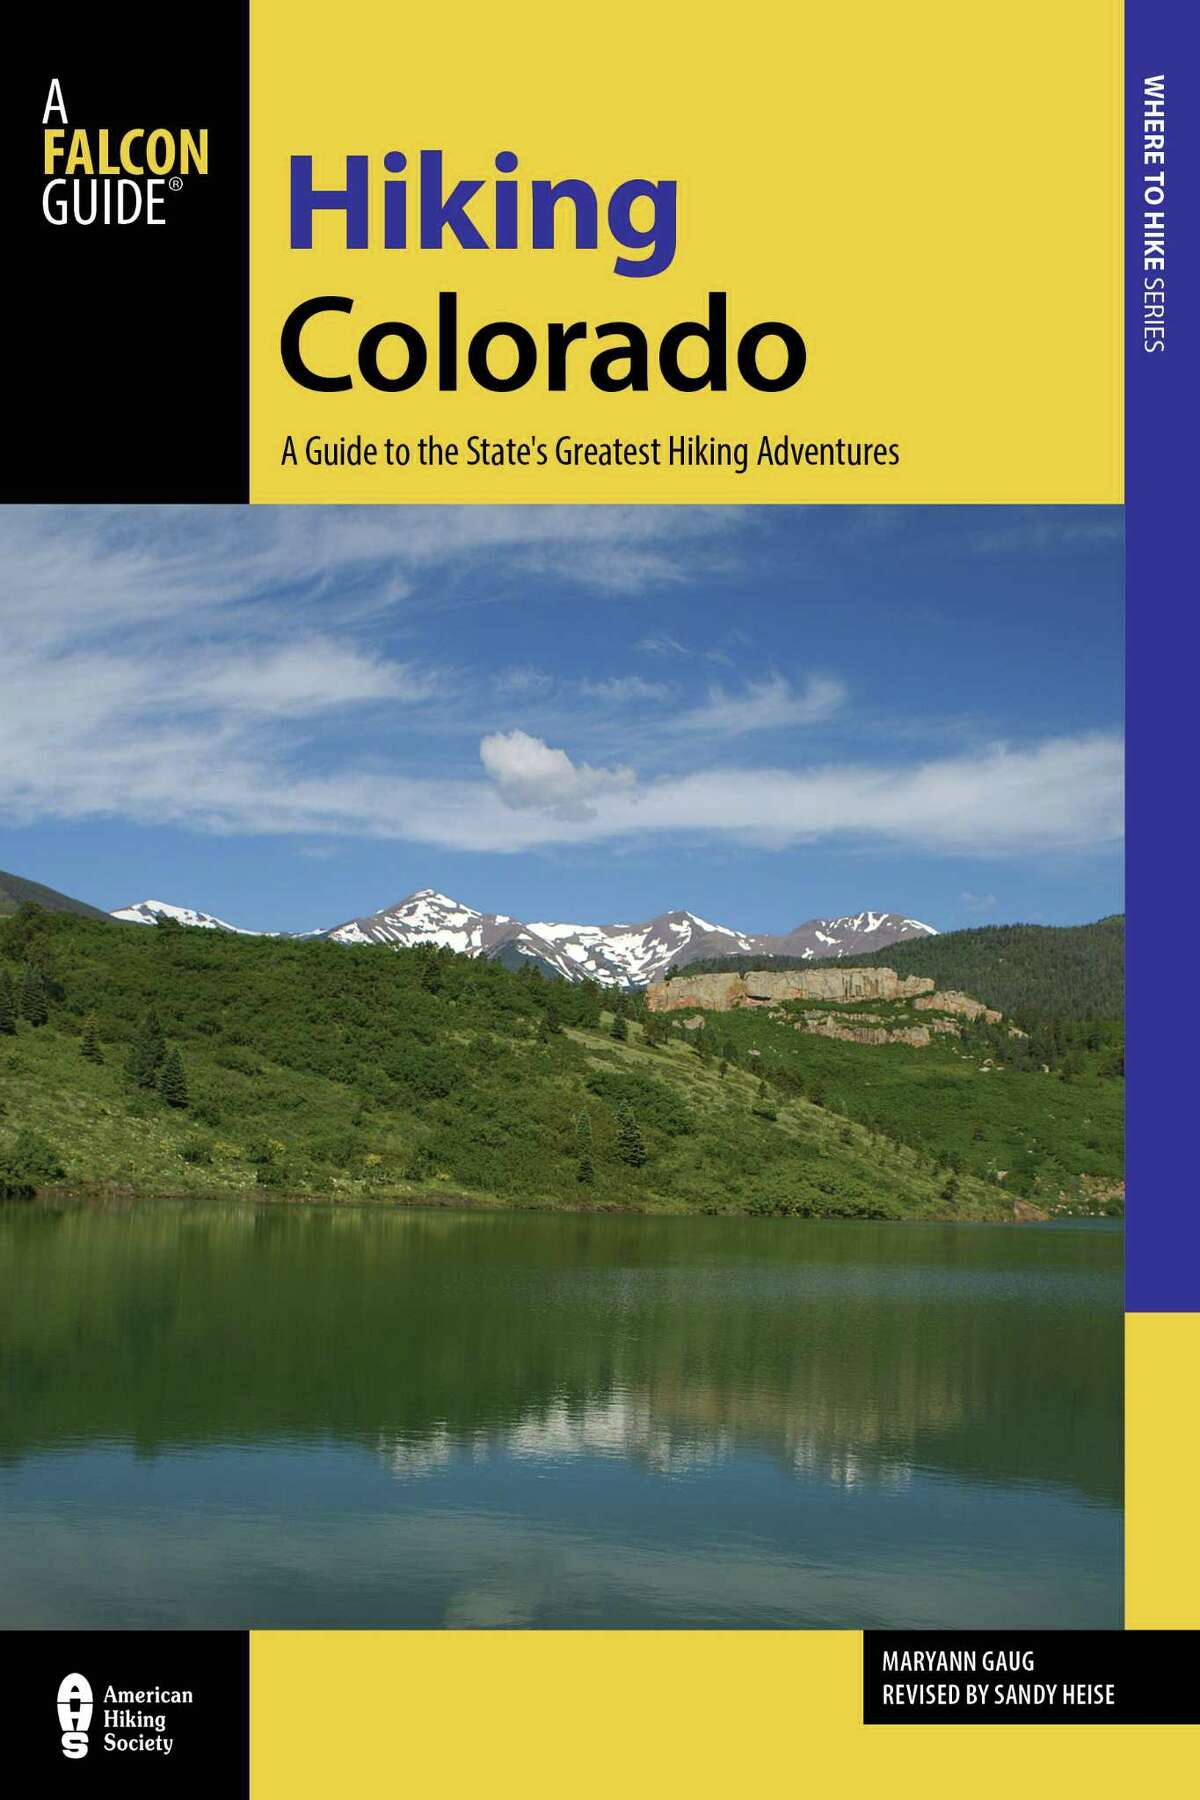 A Falcon Guide focused on Colorado hiking. Buyers have shown particular interest in mountain towns in the Rockies.